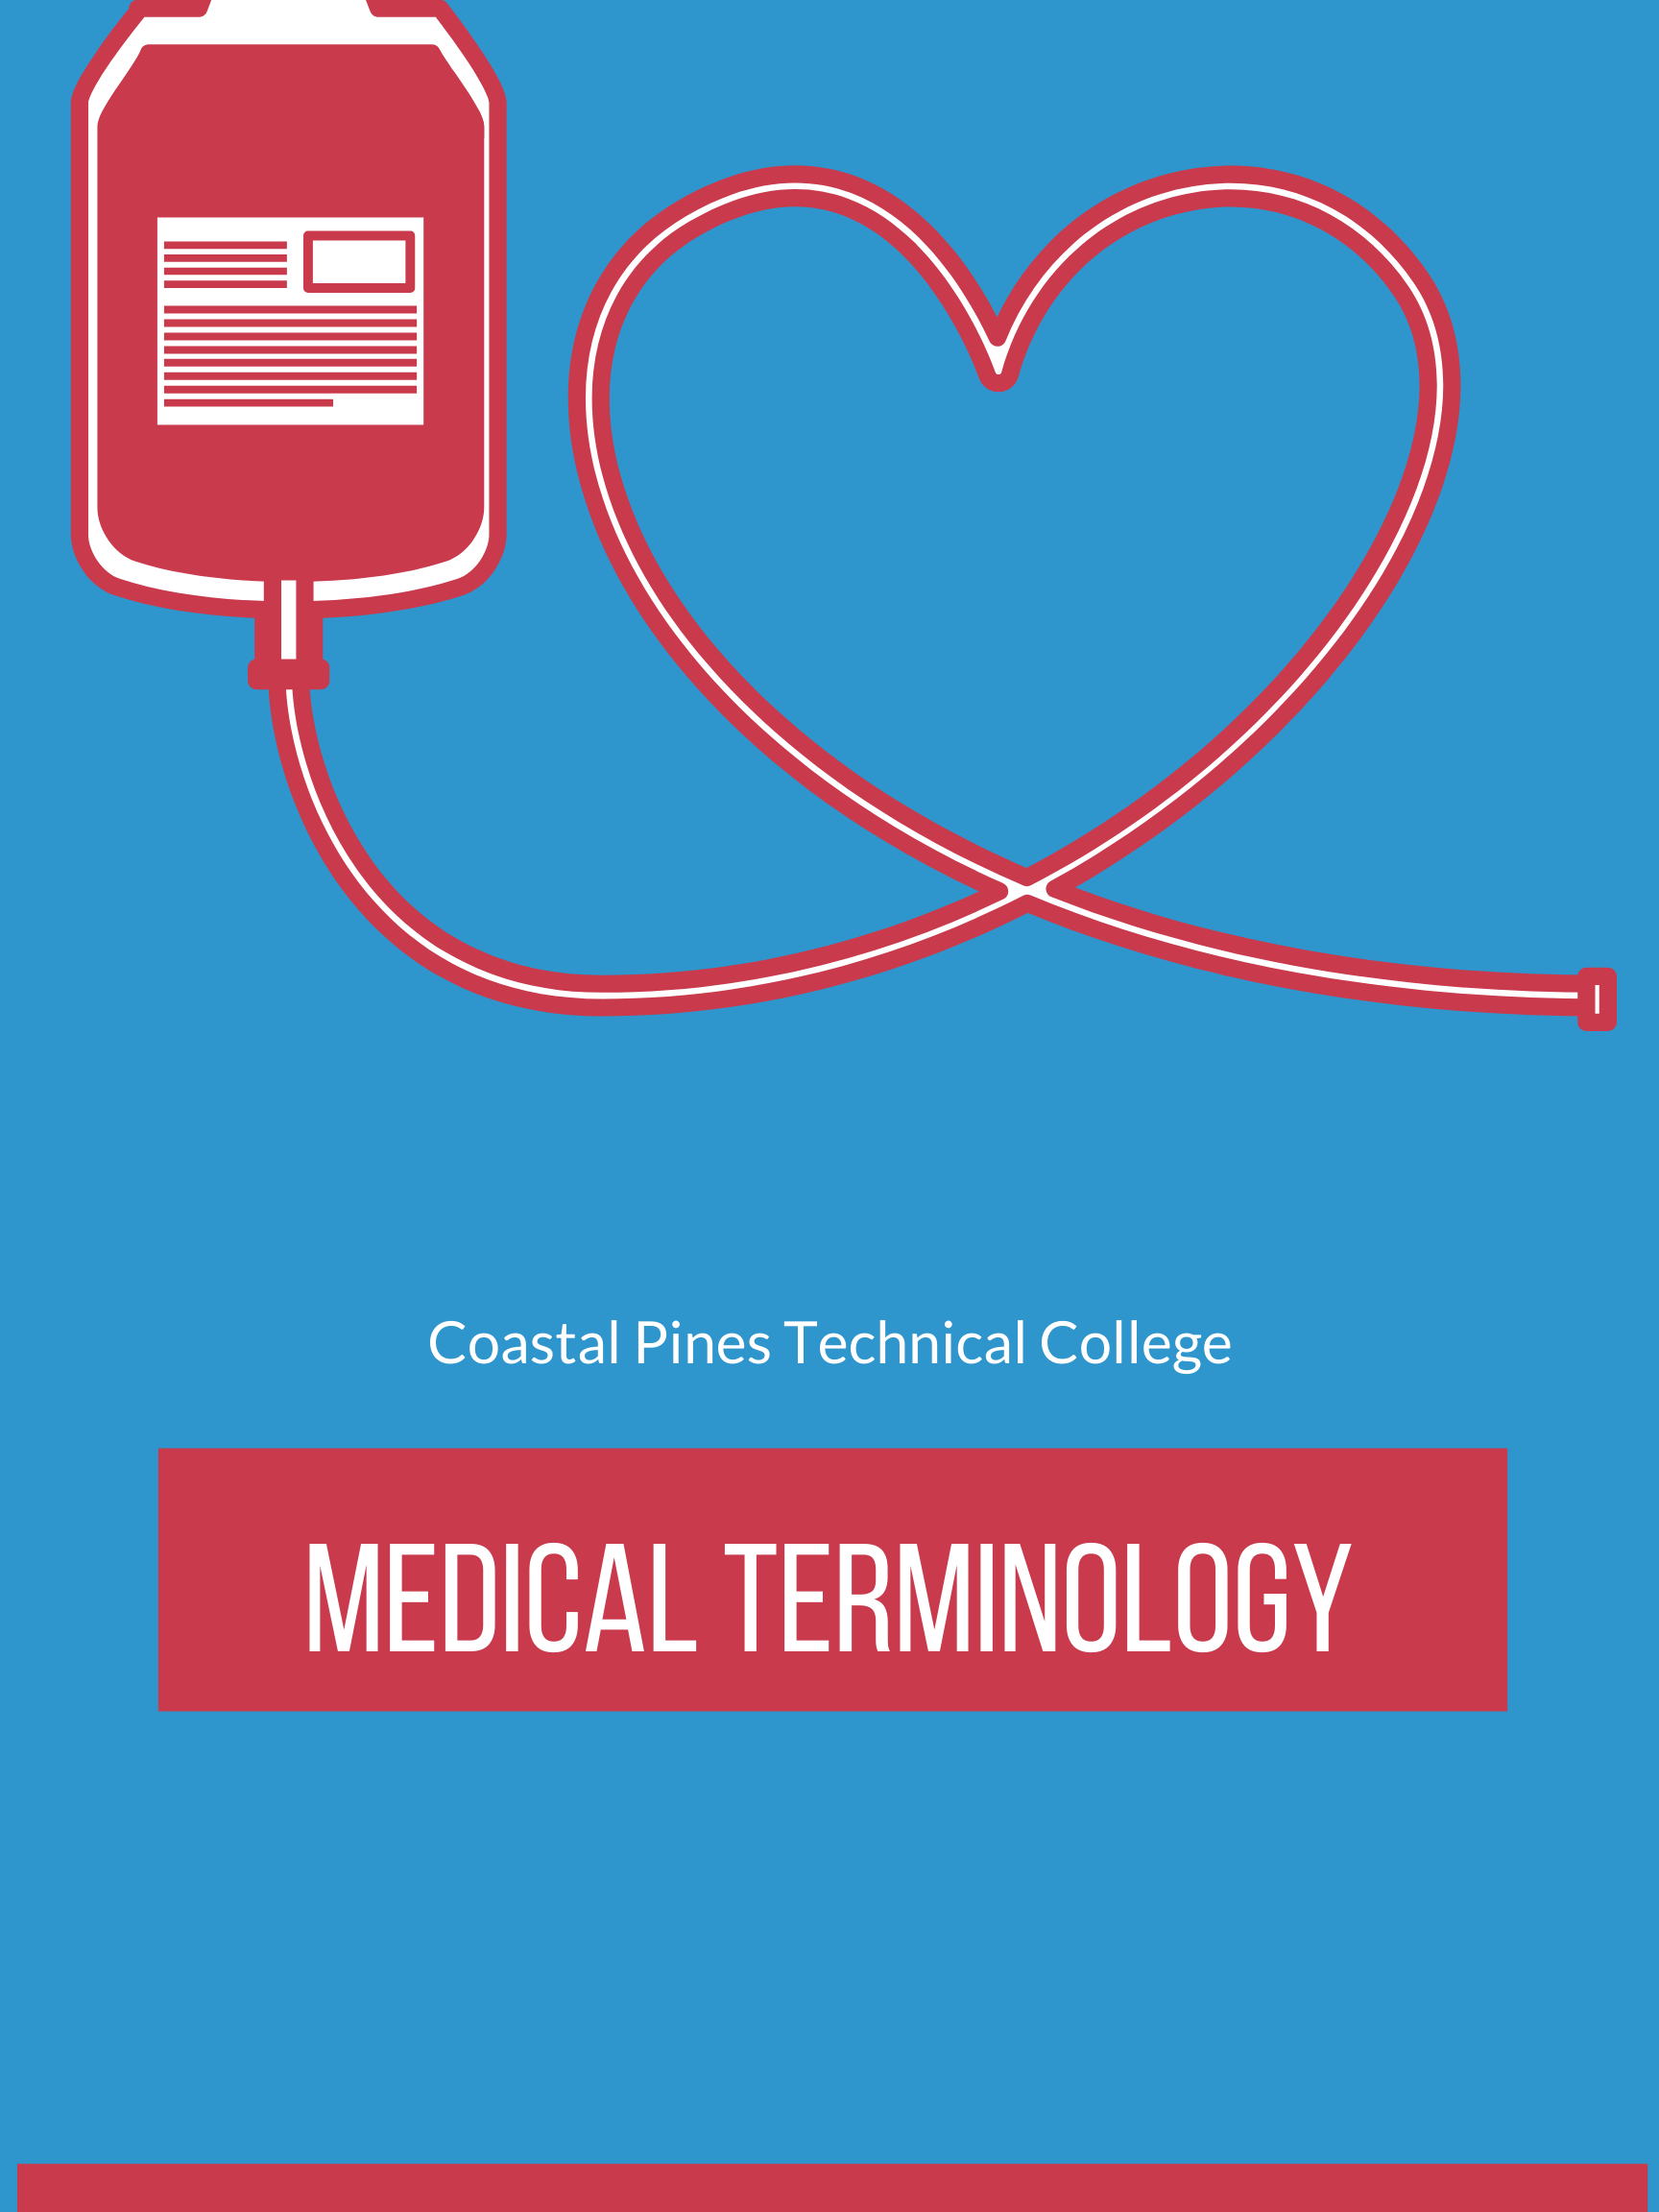 Coastal Pines Technical College Medical Terminology